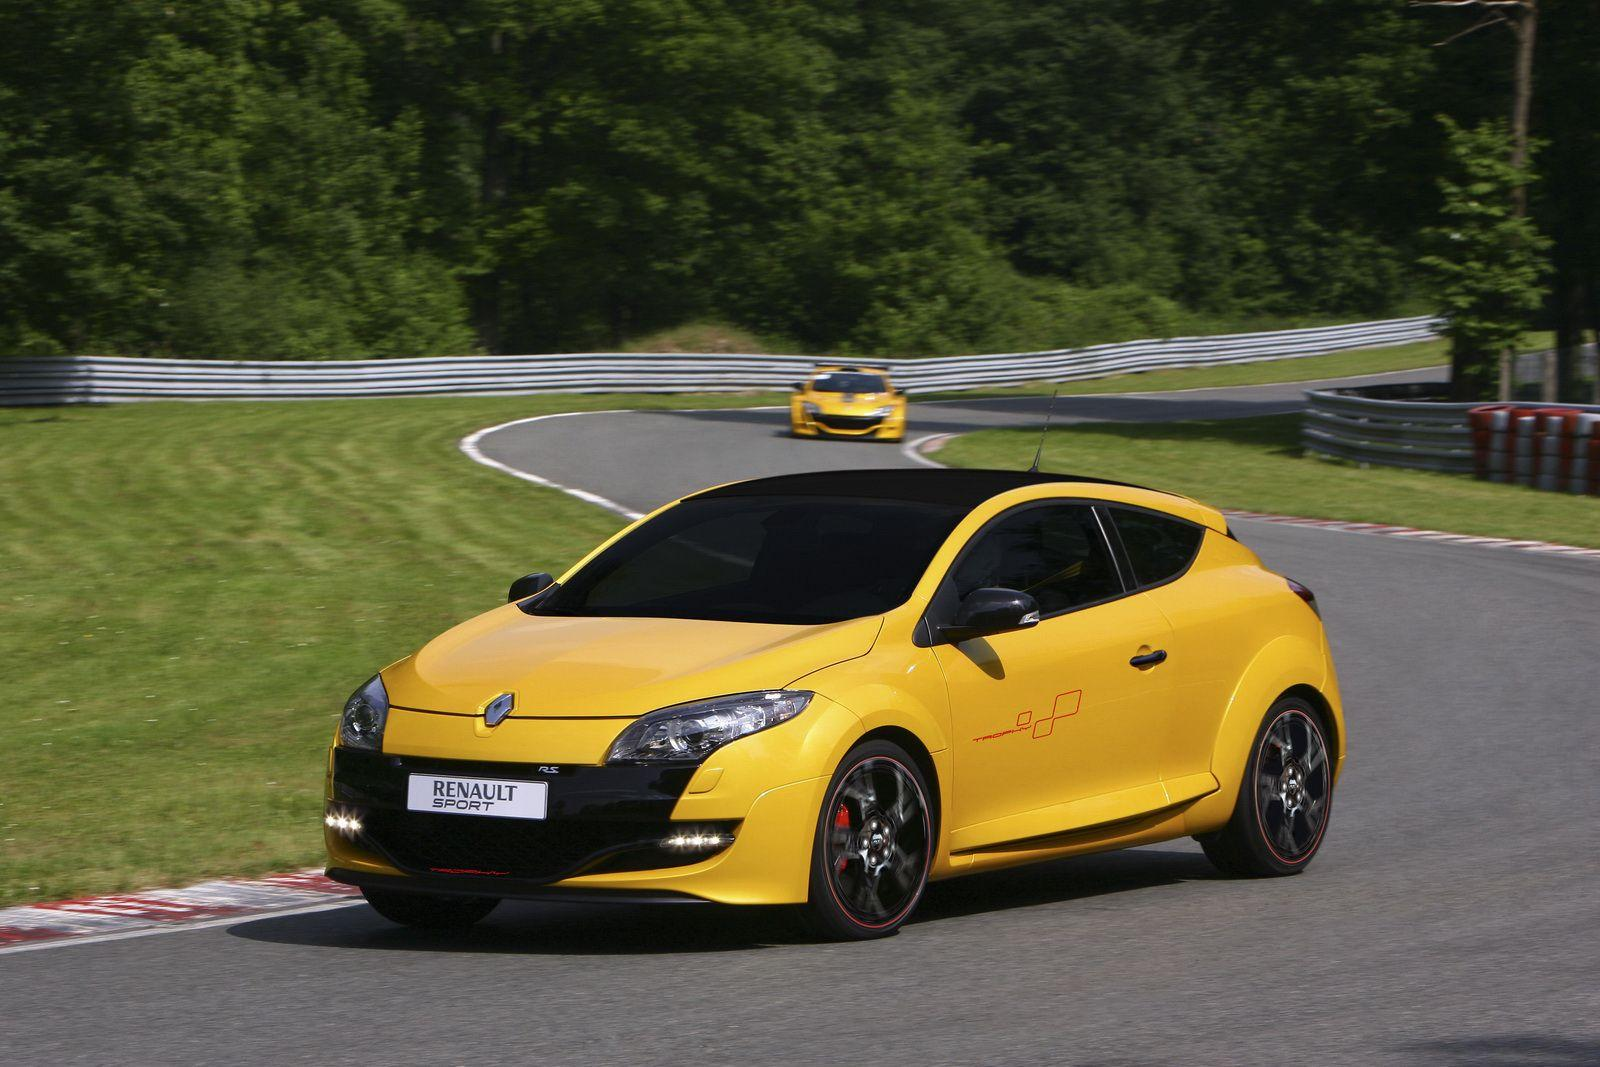 automotivegeneral: 2020 new megane renault sport wallpapers